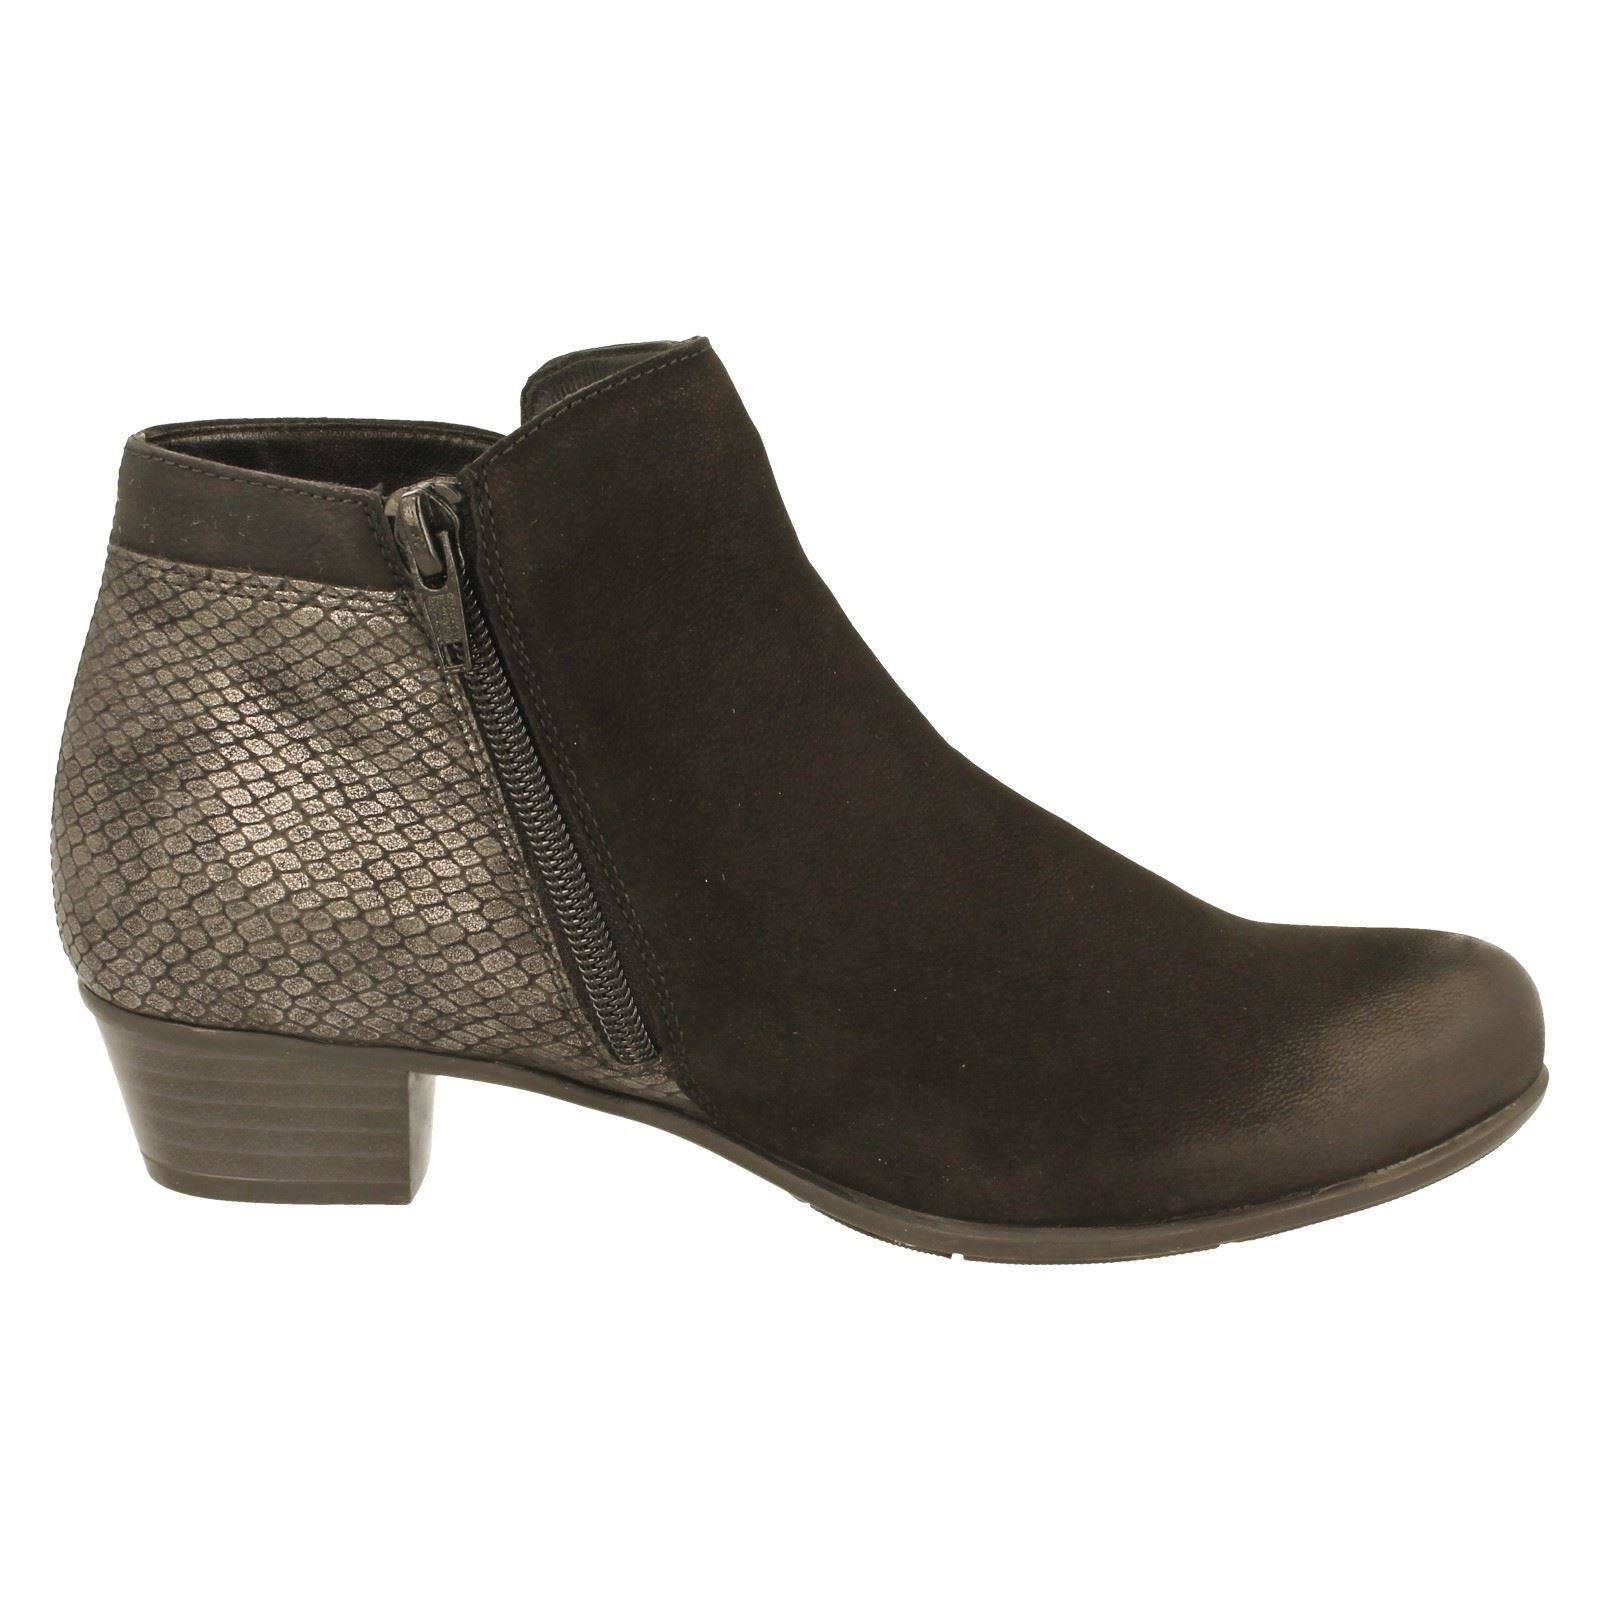 D3579 w Remonte Style Boots Ankle Black The Combination Ladies RzwZqn